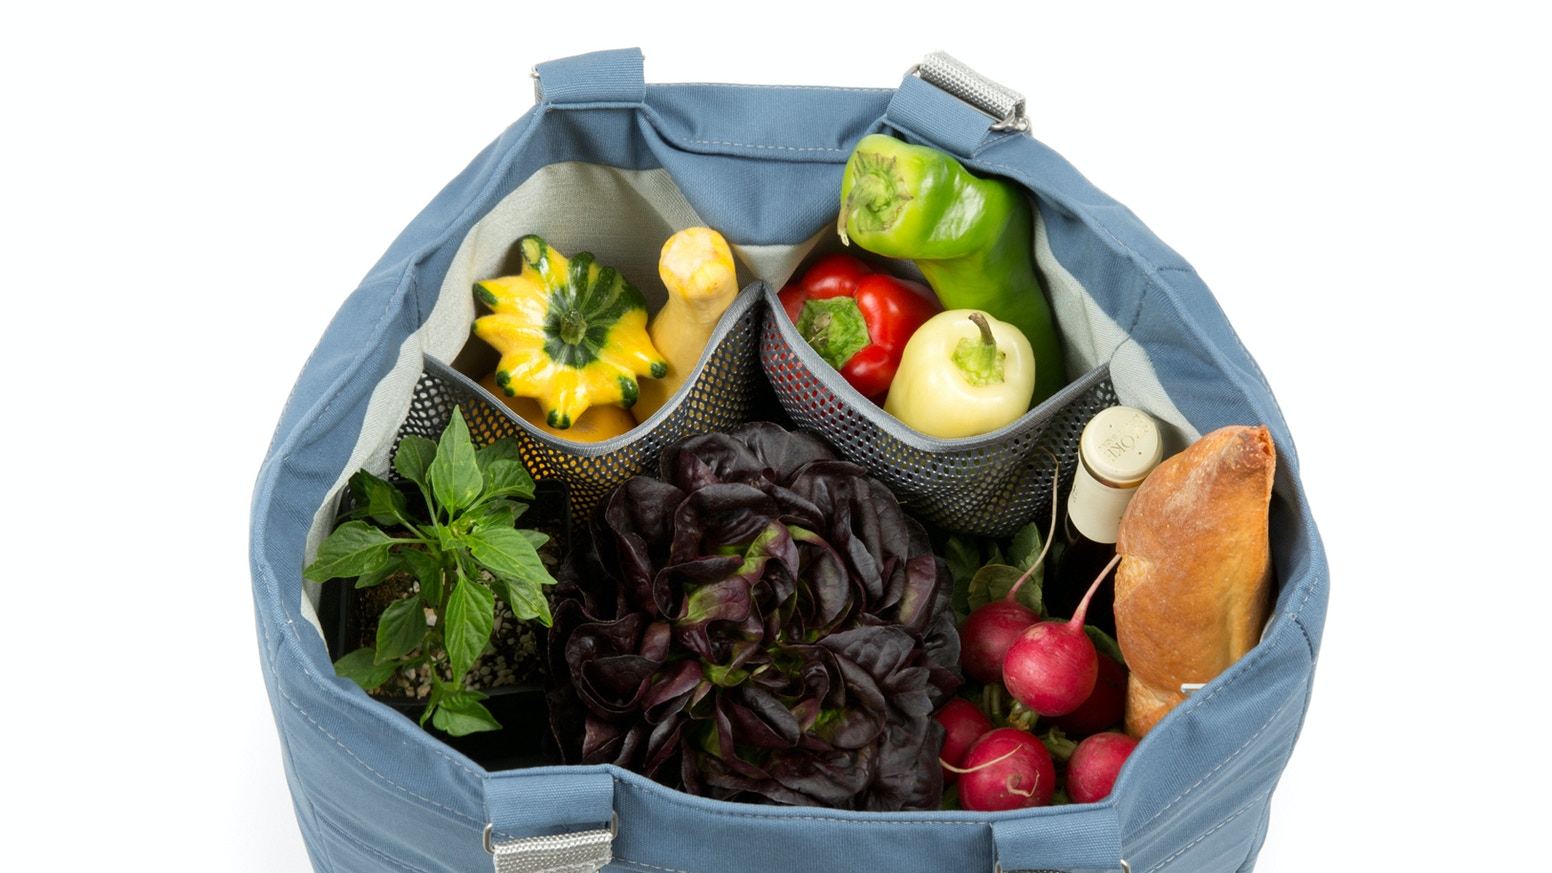 A smart grocery tote that organizes, insulates and protects your  market finds with adjustable compartments and an innovative shelf.